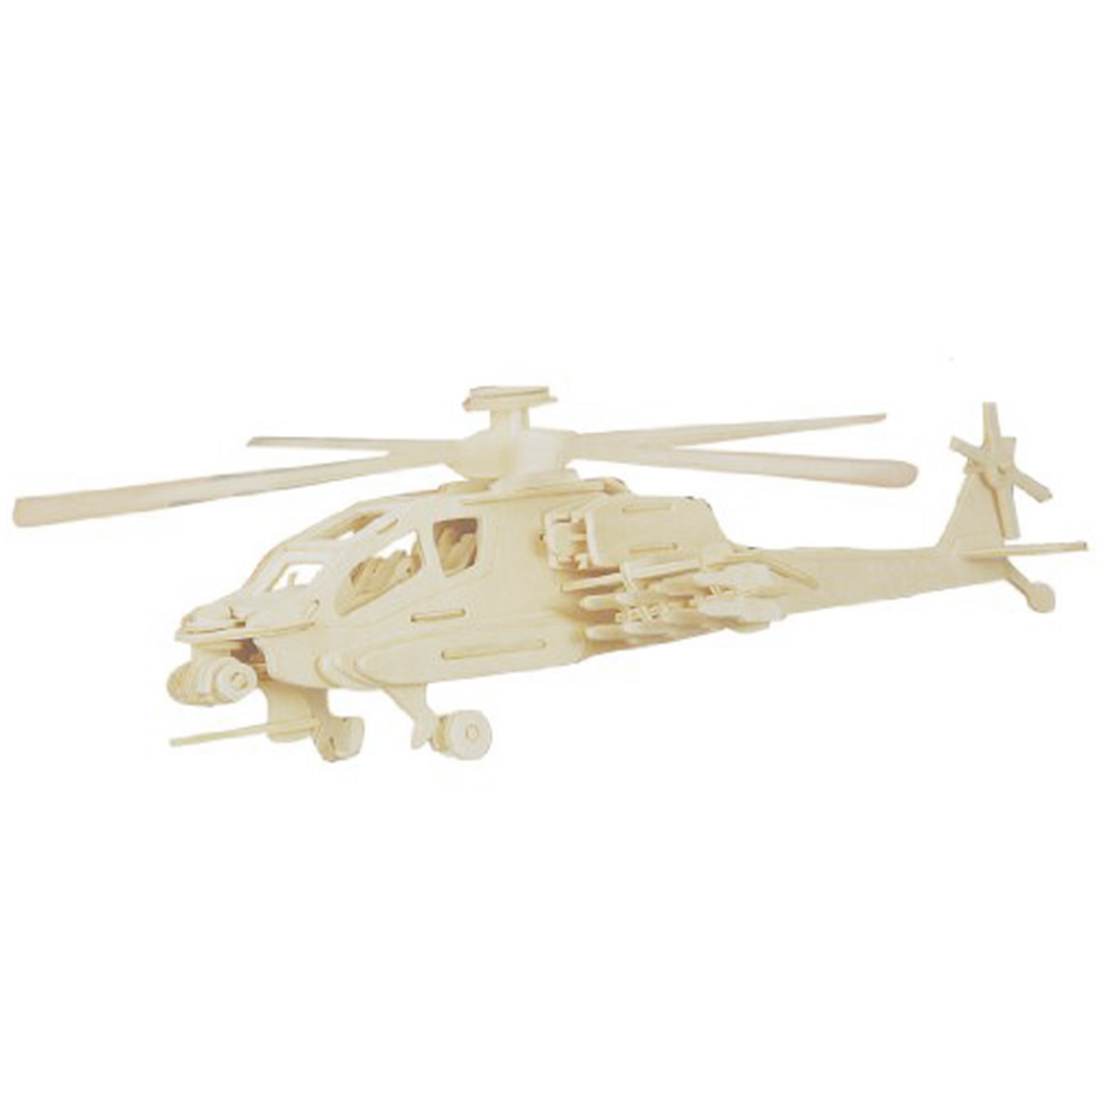 New Child 3D Wooden Apache Model Woodcraft Construction Kit Puzzle Toy Gift